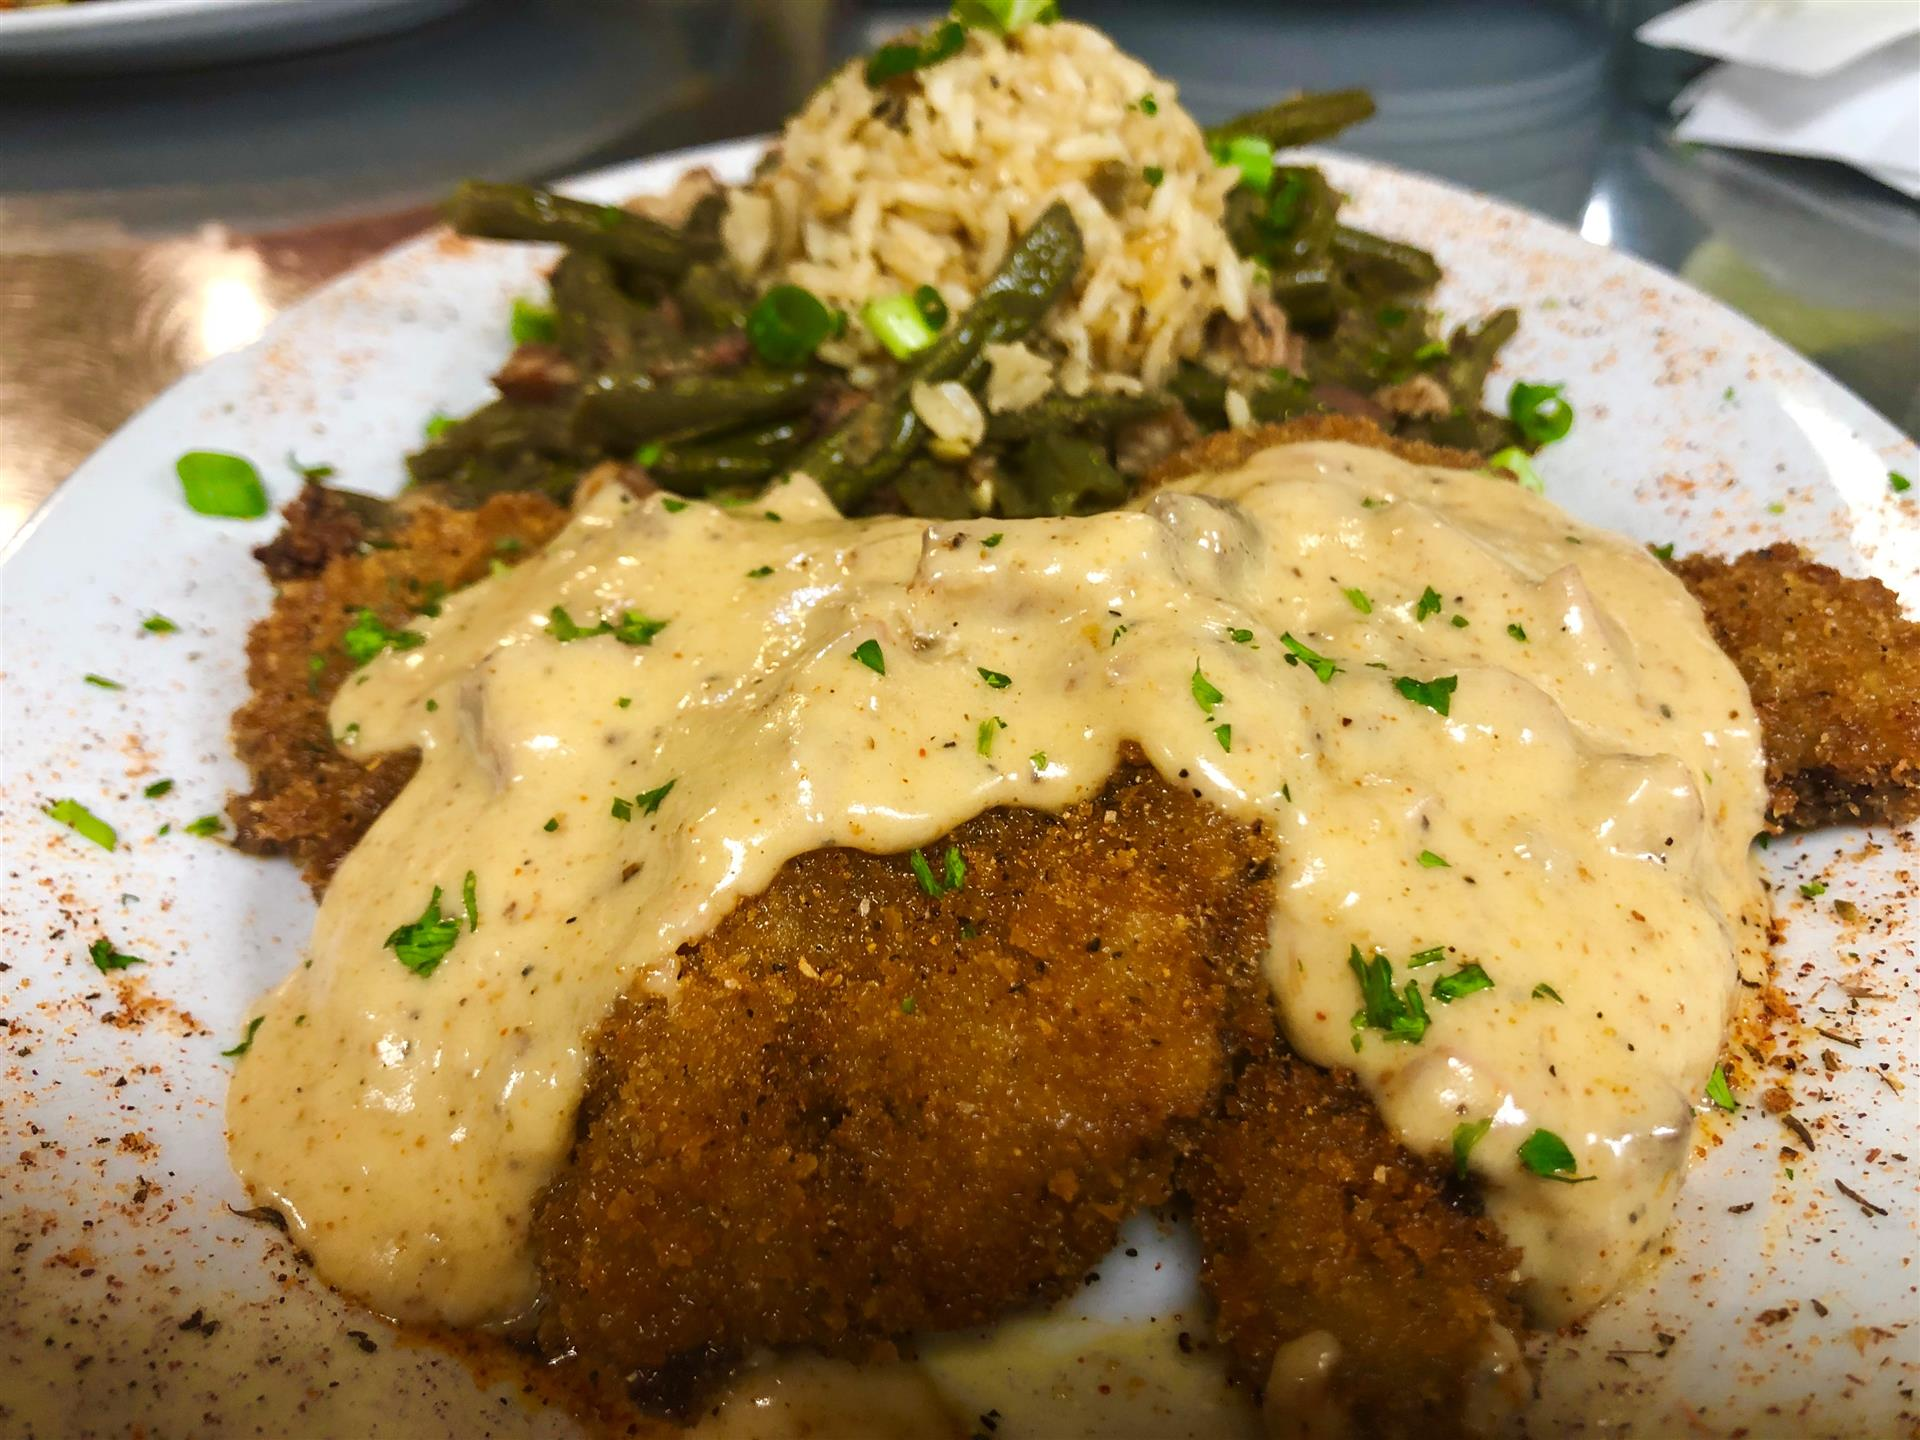 Country Fried Filet Mignon. Topped with tasso gravy, served with bacon smothered green beans with new potatoes & rice